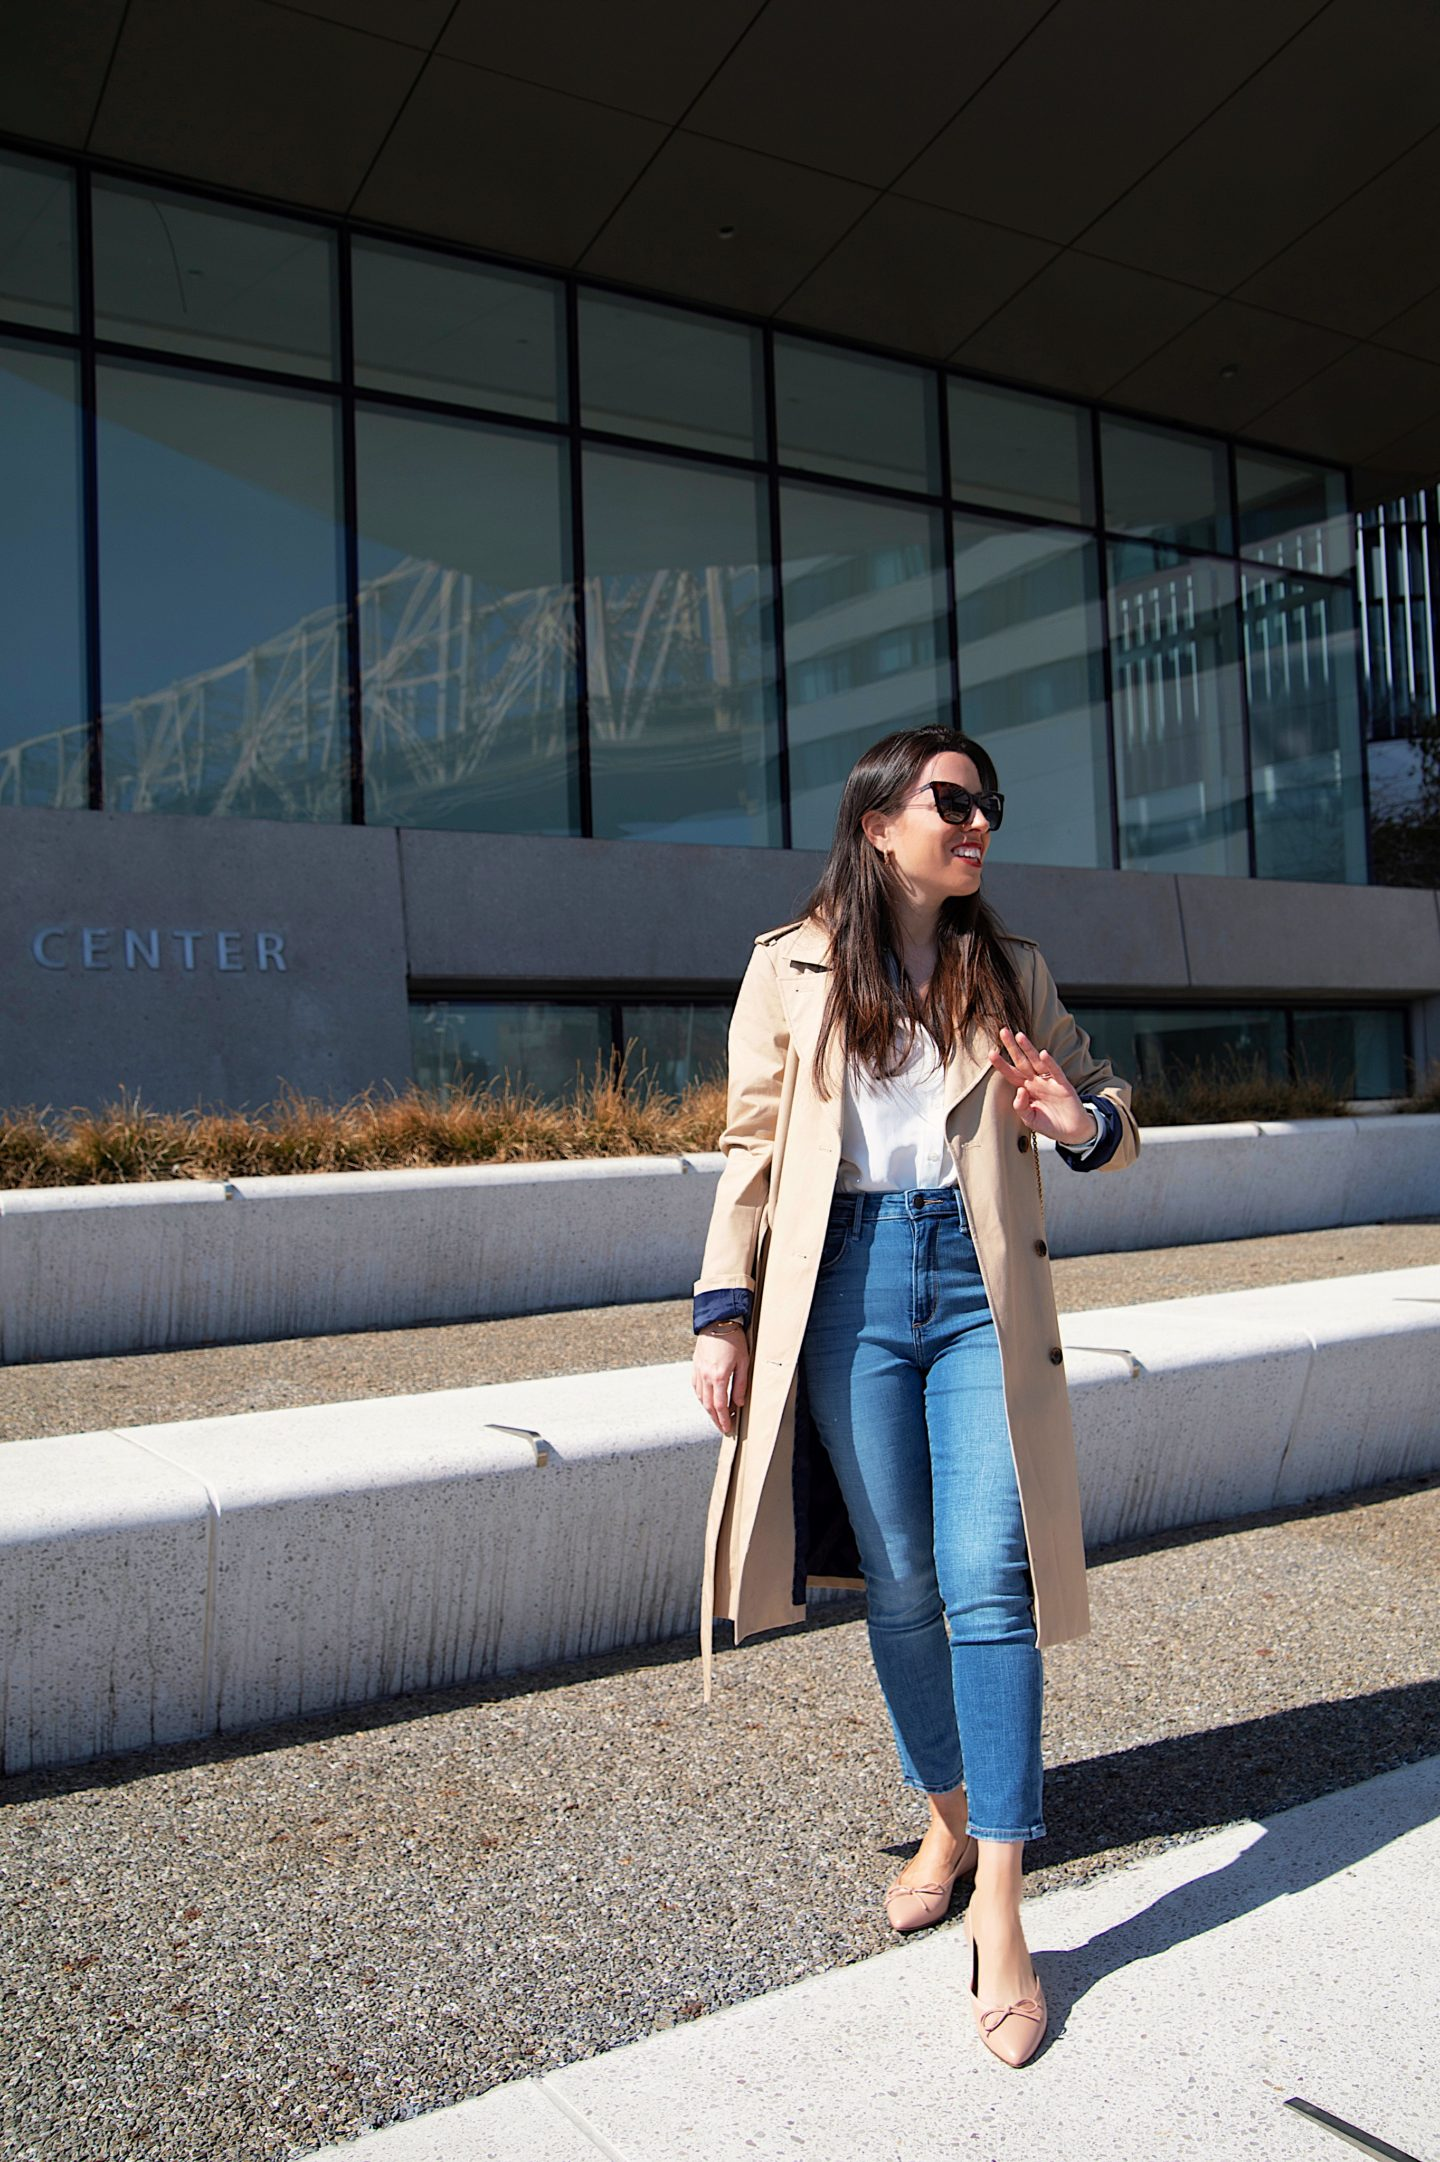 ana florentina wearing abercrombie jeans and jcrew trench coat